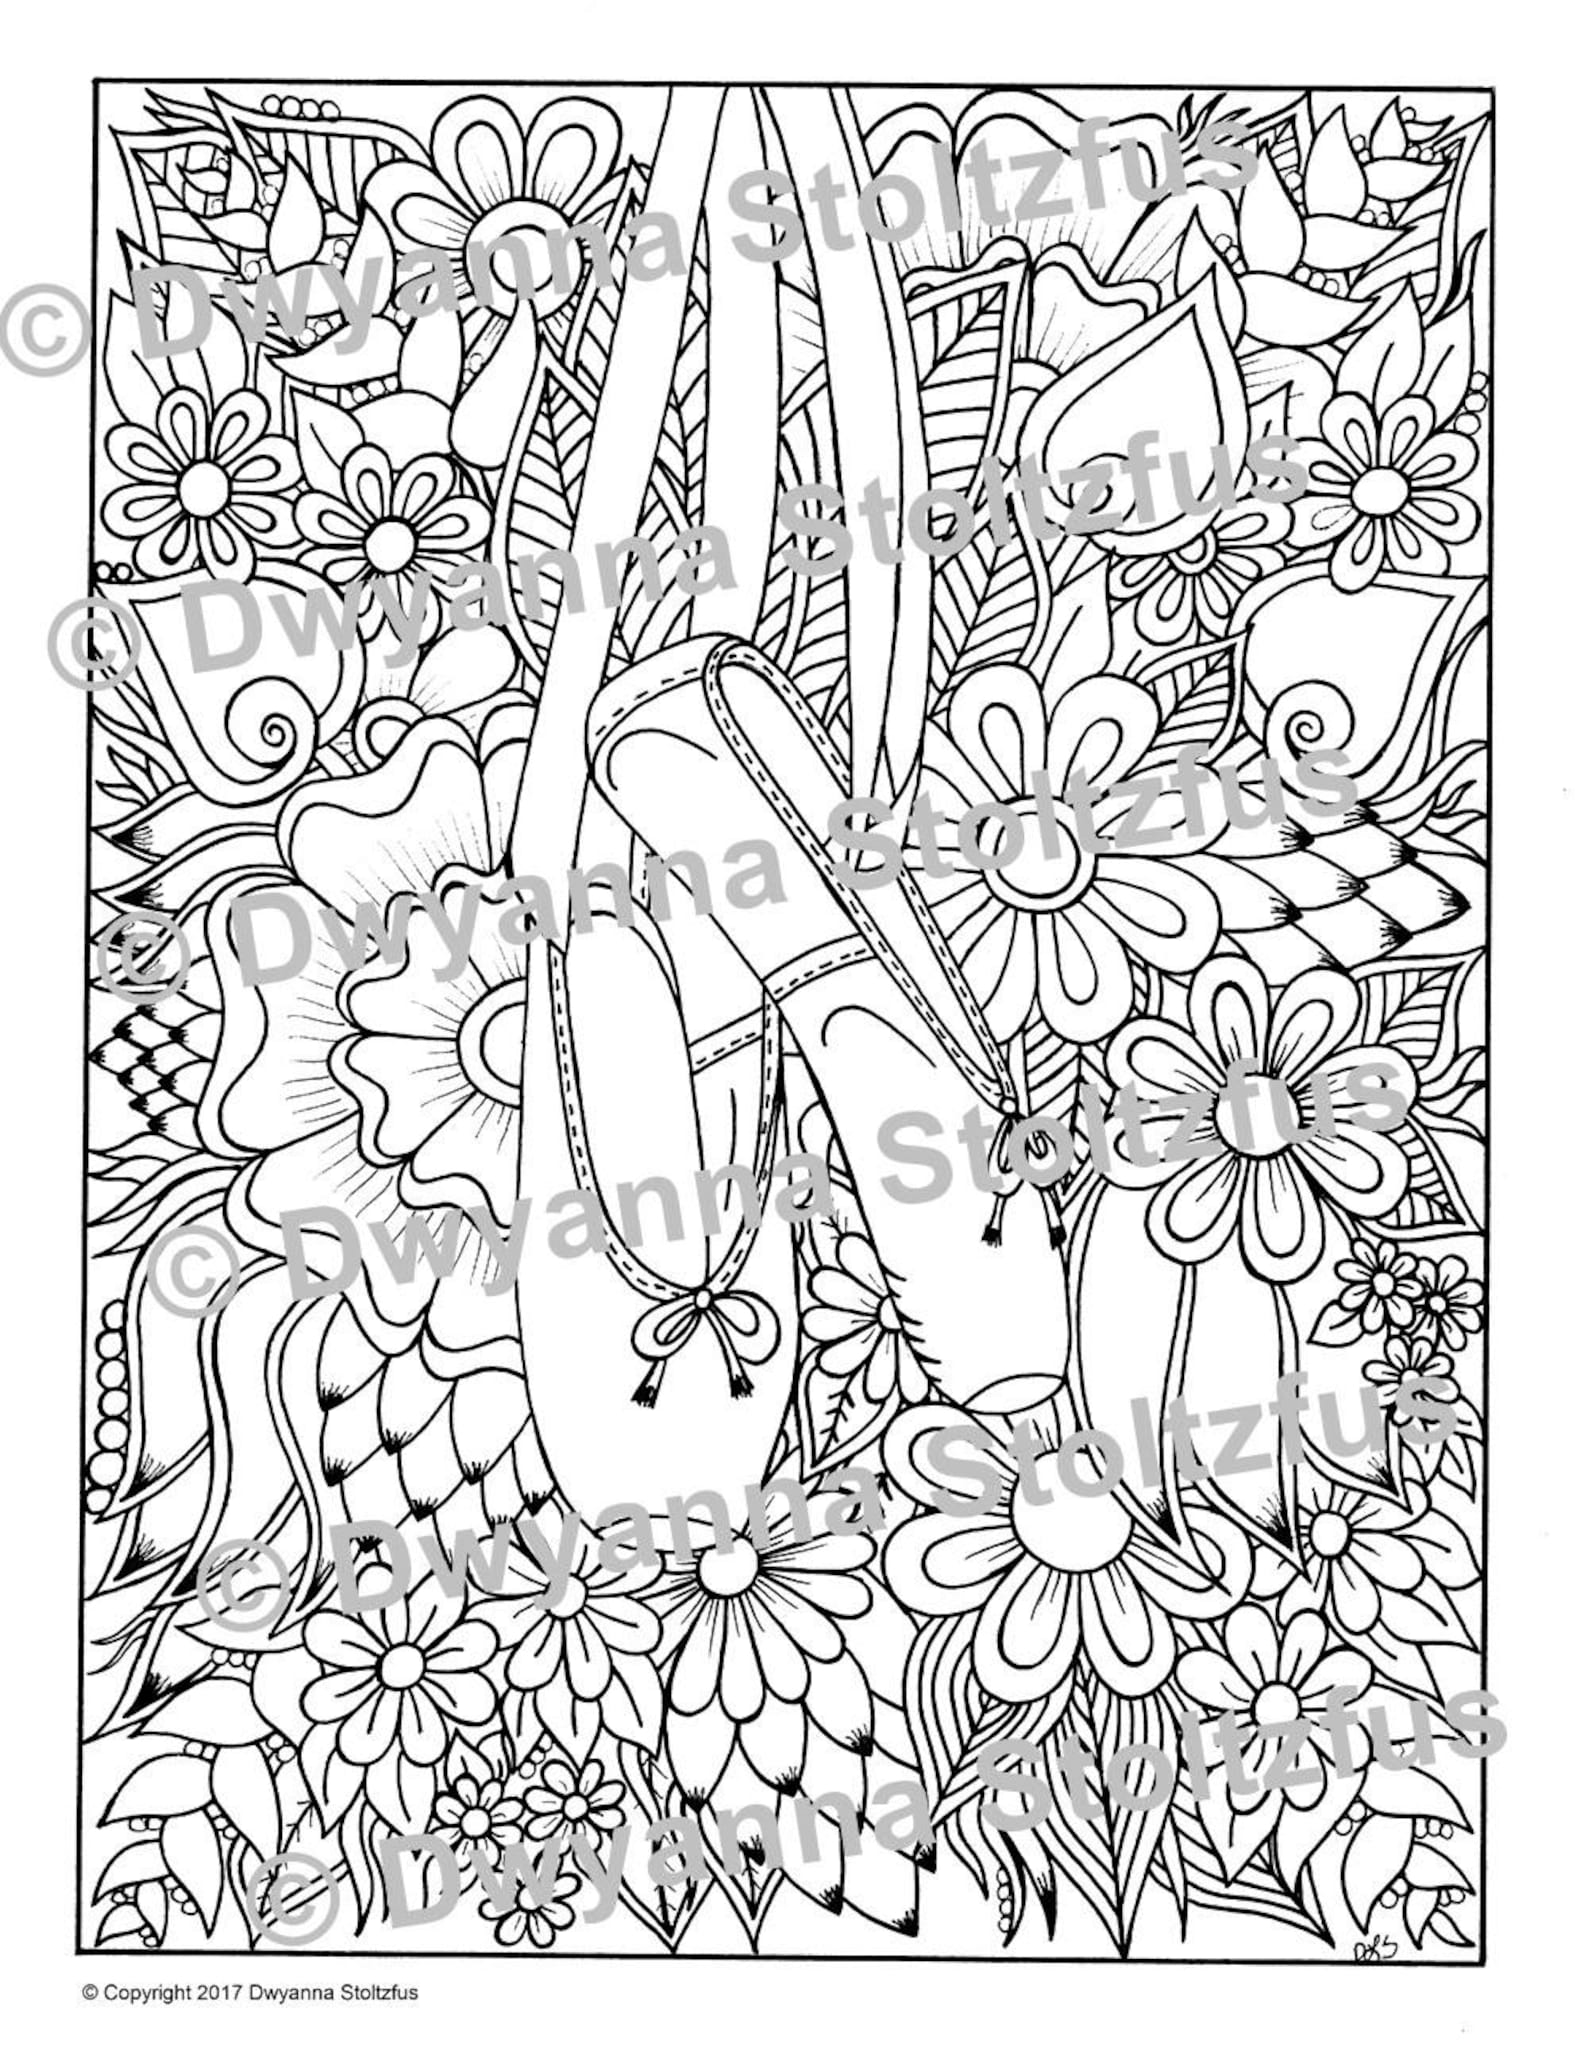 hanging ballet shoes coloring page jpg